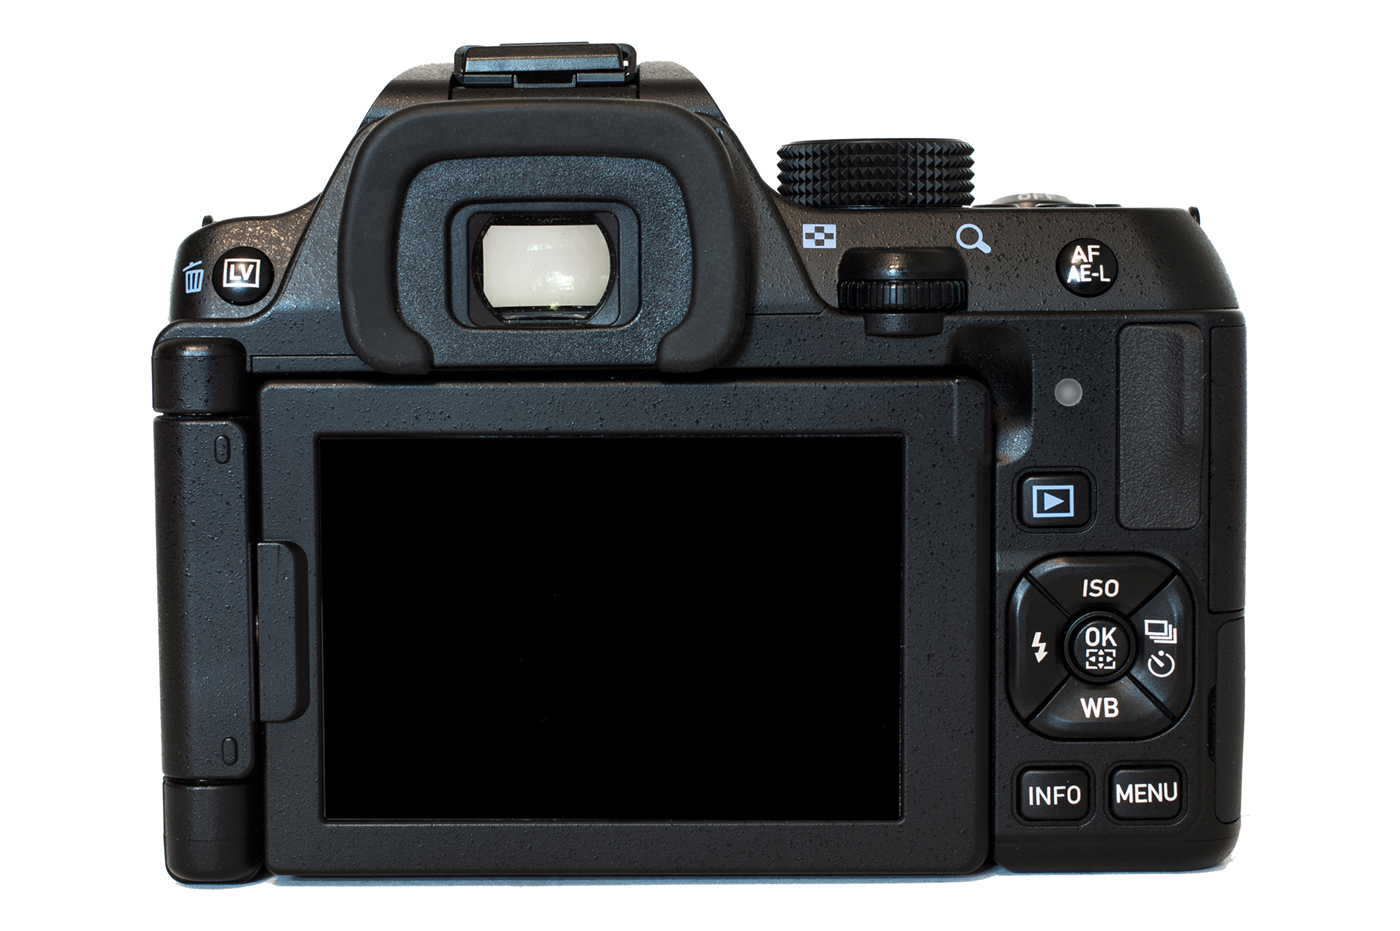 The rear of the Pentax K-70